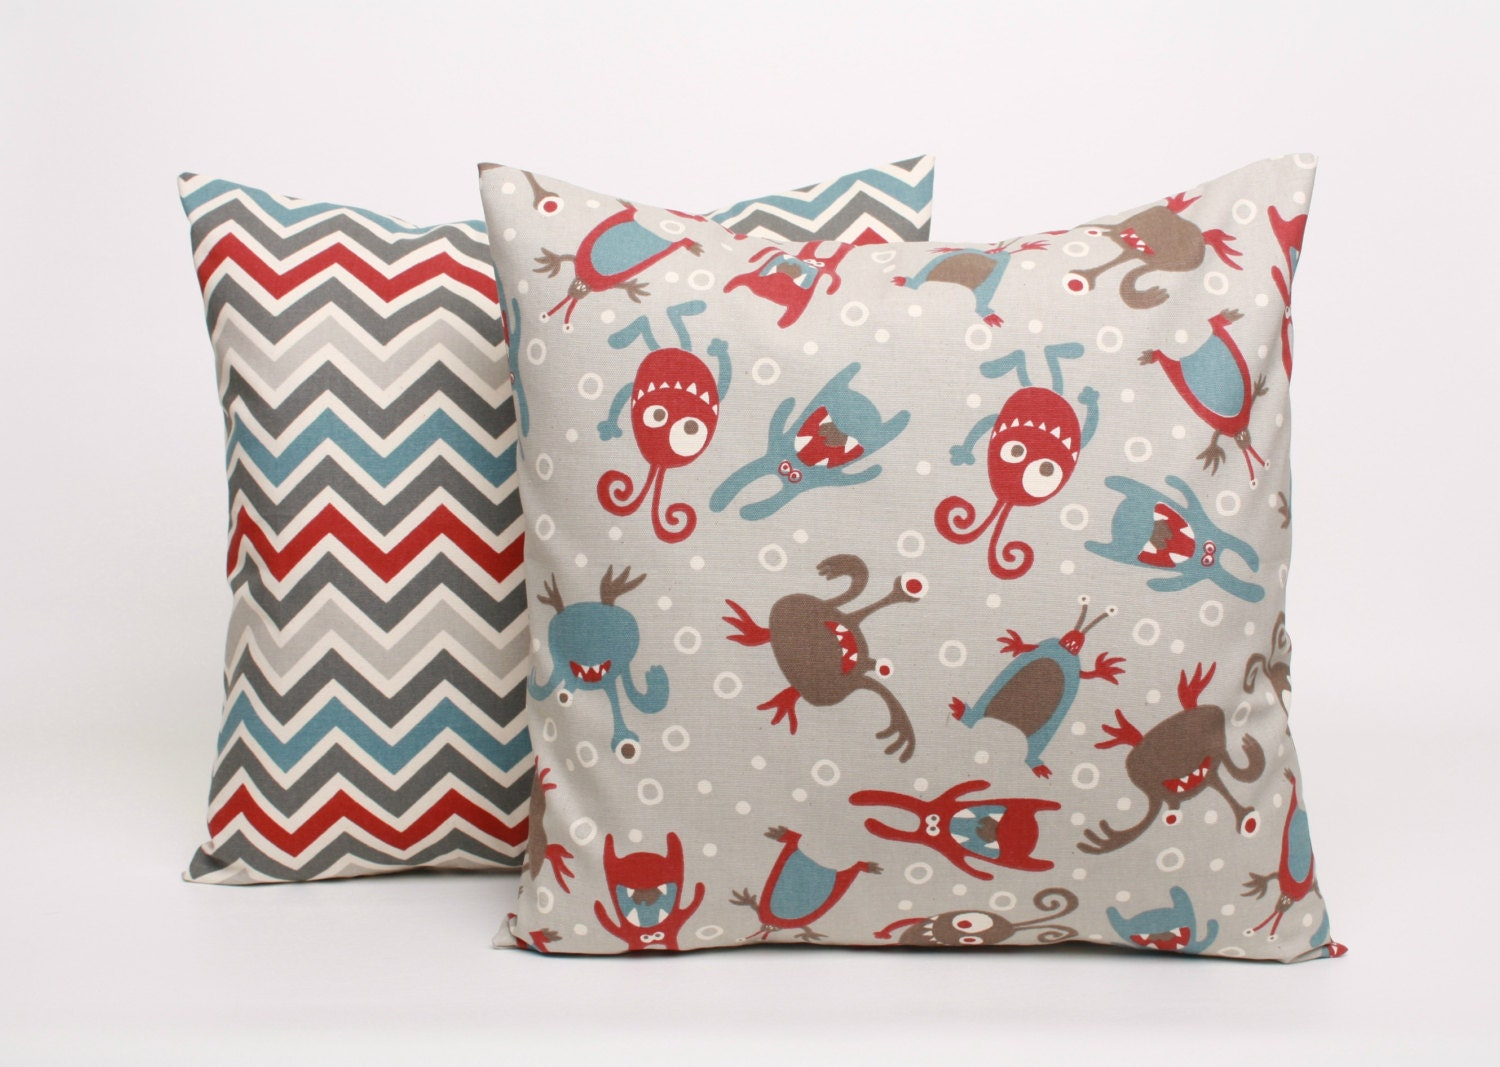 Set of Throw Pillows 22x22 Pillow Covers Gray Red, and Blue Lil Monsters and Chevron Decorative ...